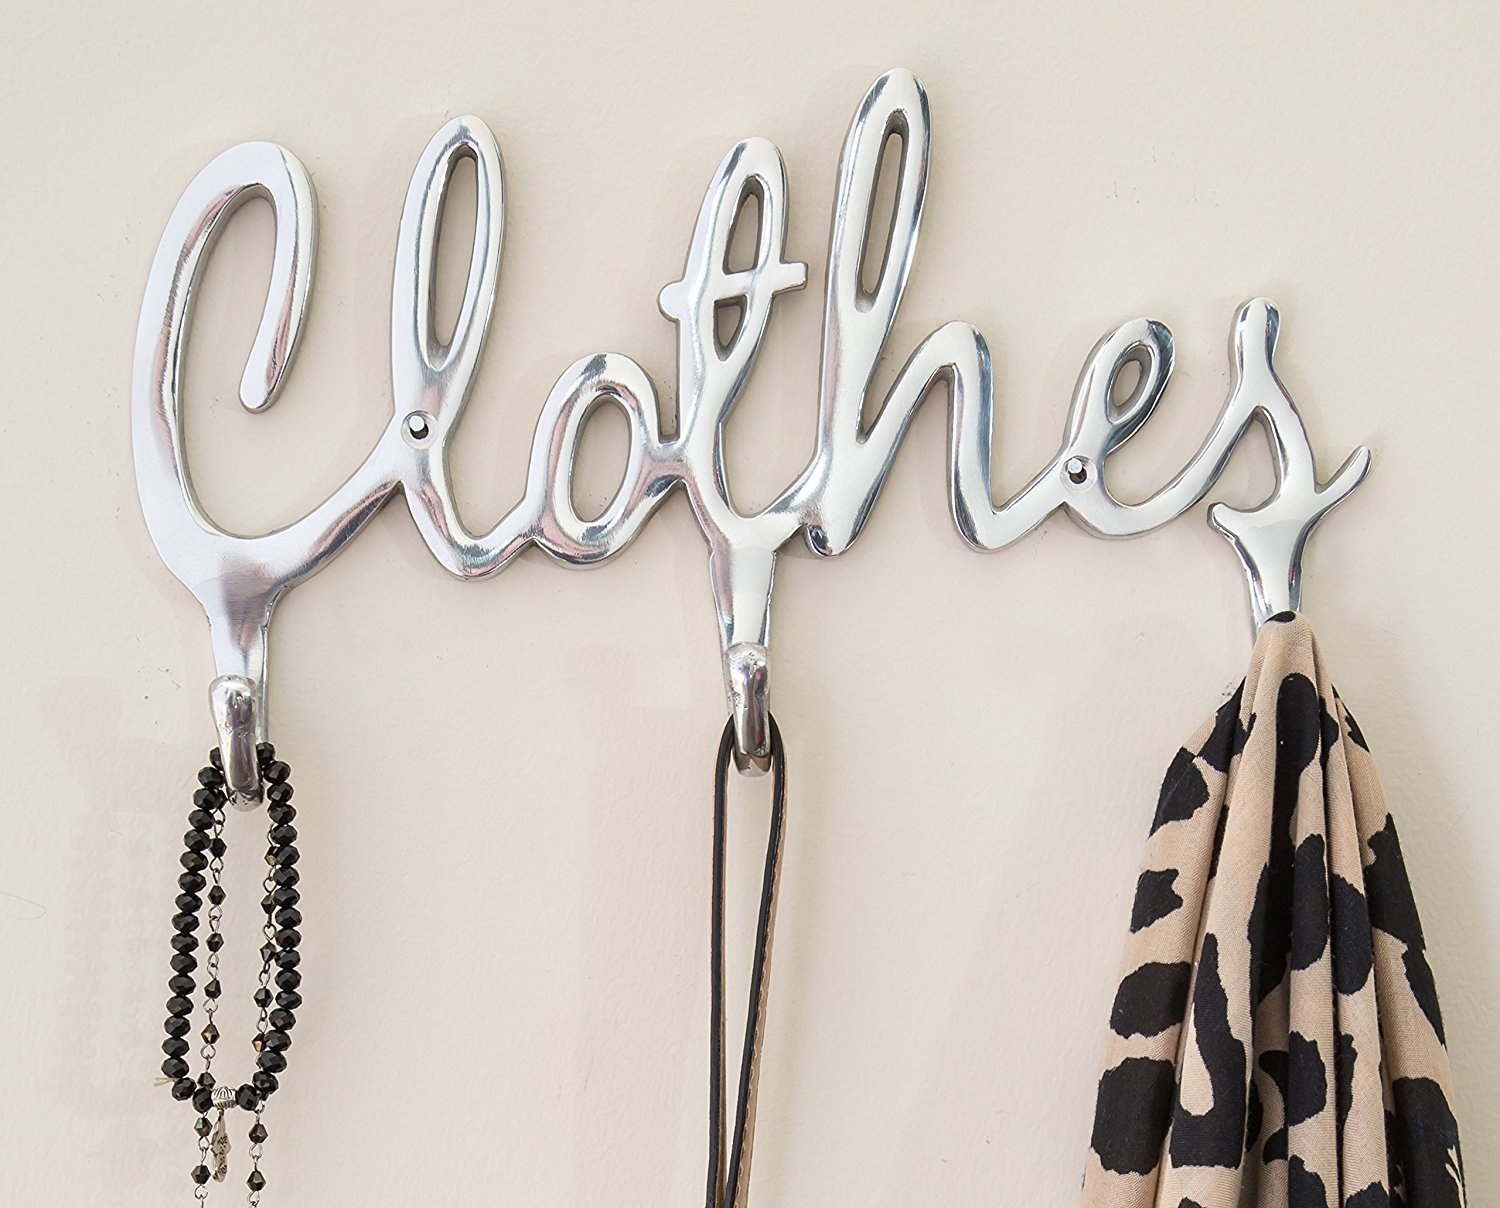 Shabby Chic Style Clothes Coat Rack Hooks By Comfify Polished Metal Contemporary Wall